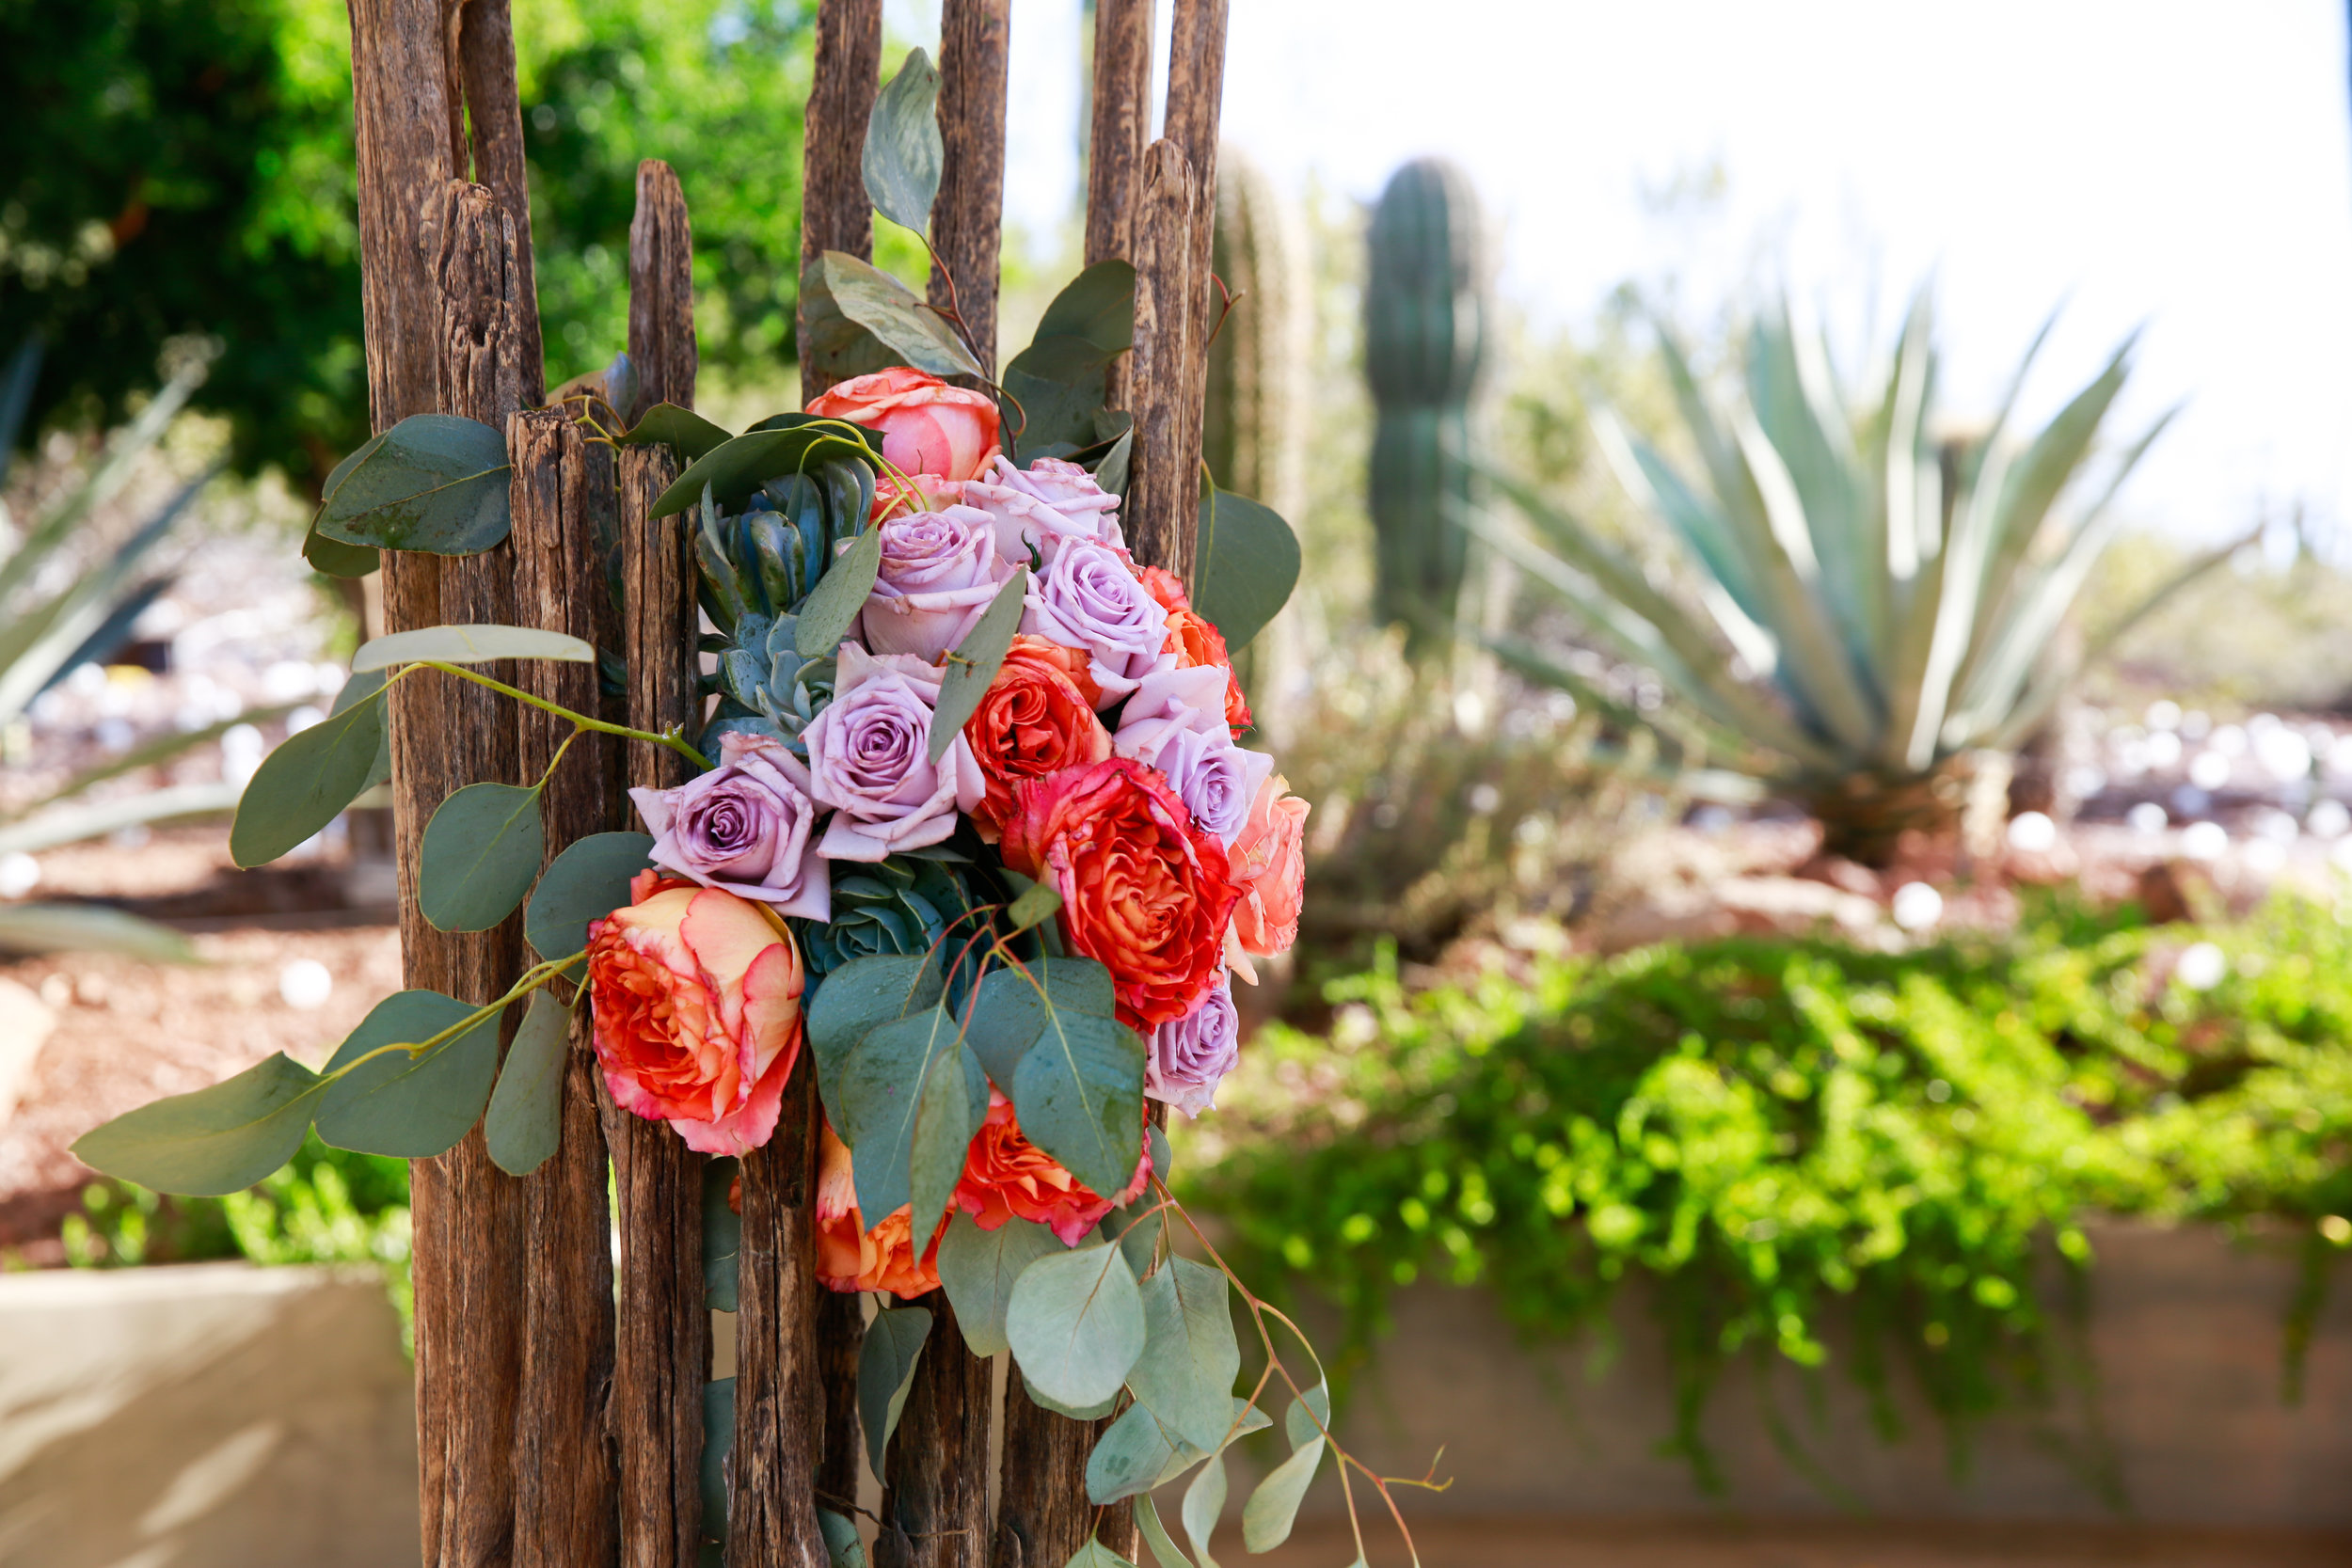 3 wedding florals red and purple roses eucalyptus with floral arrangements Mod Wed Photography Life Design Events .jpg